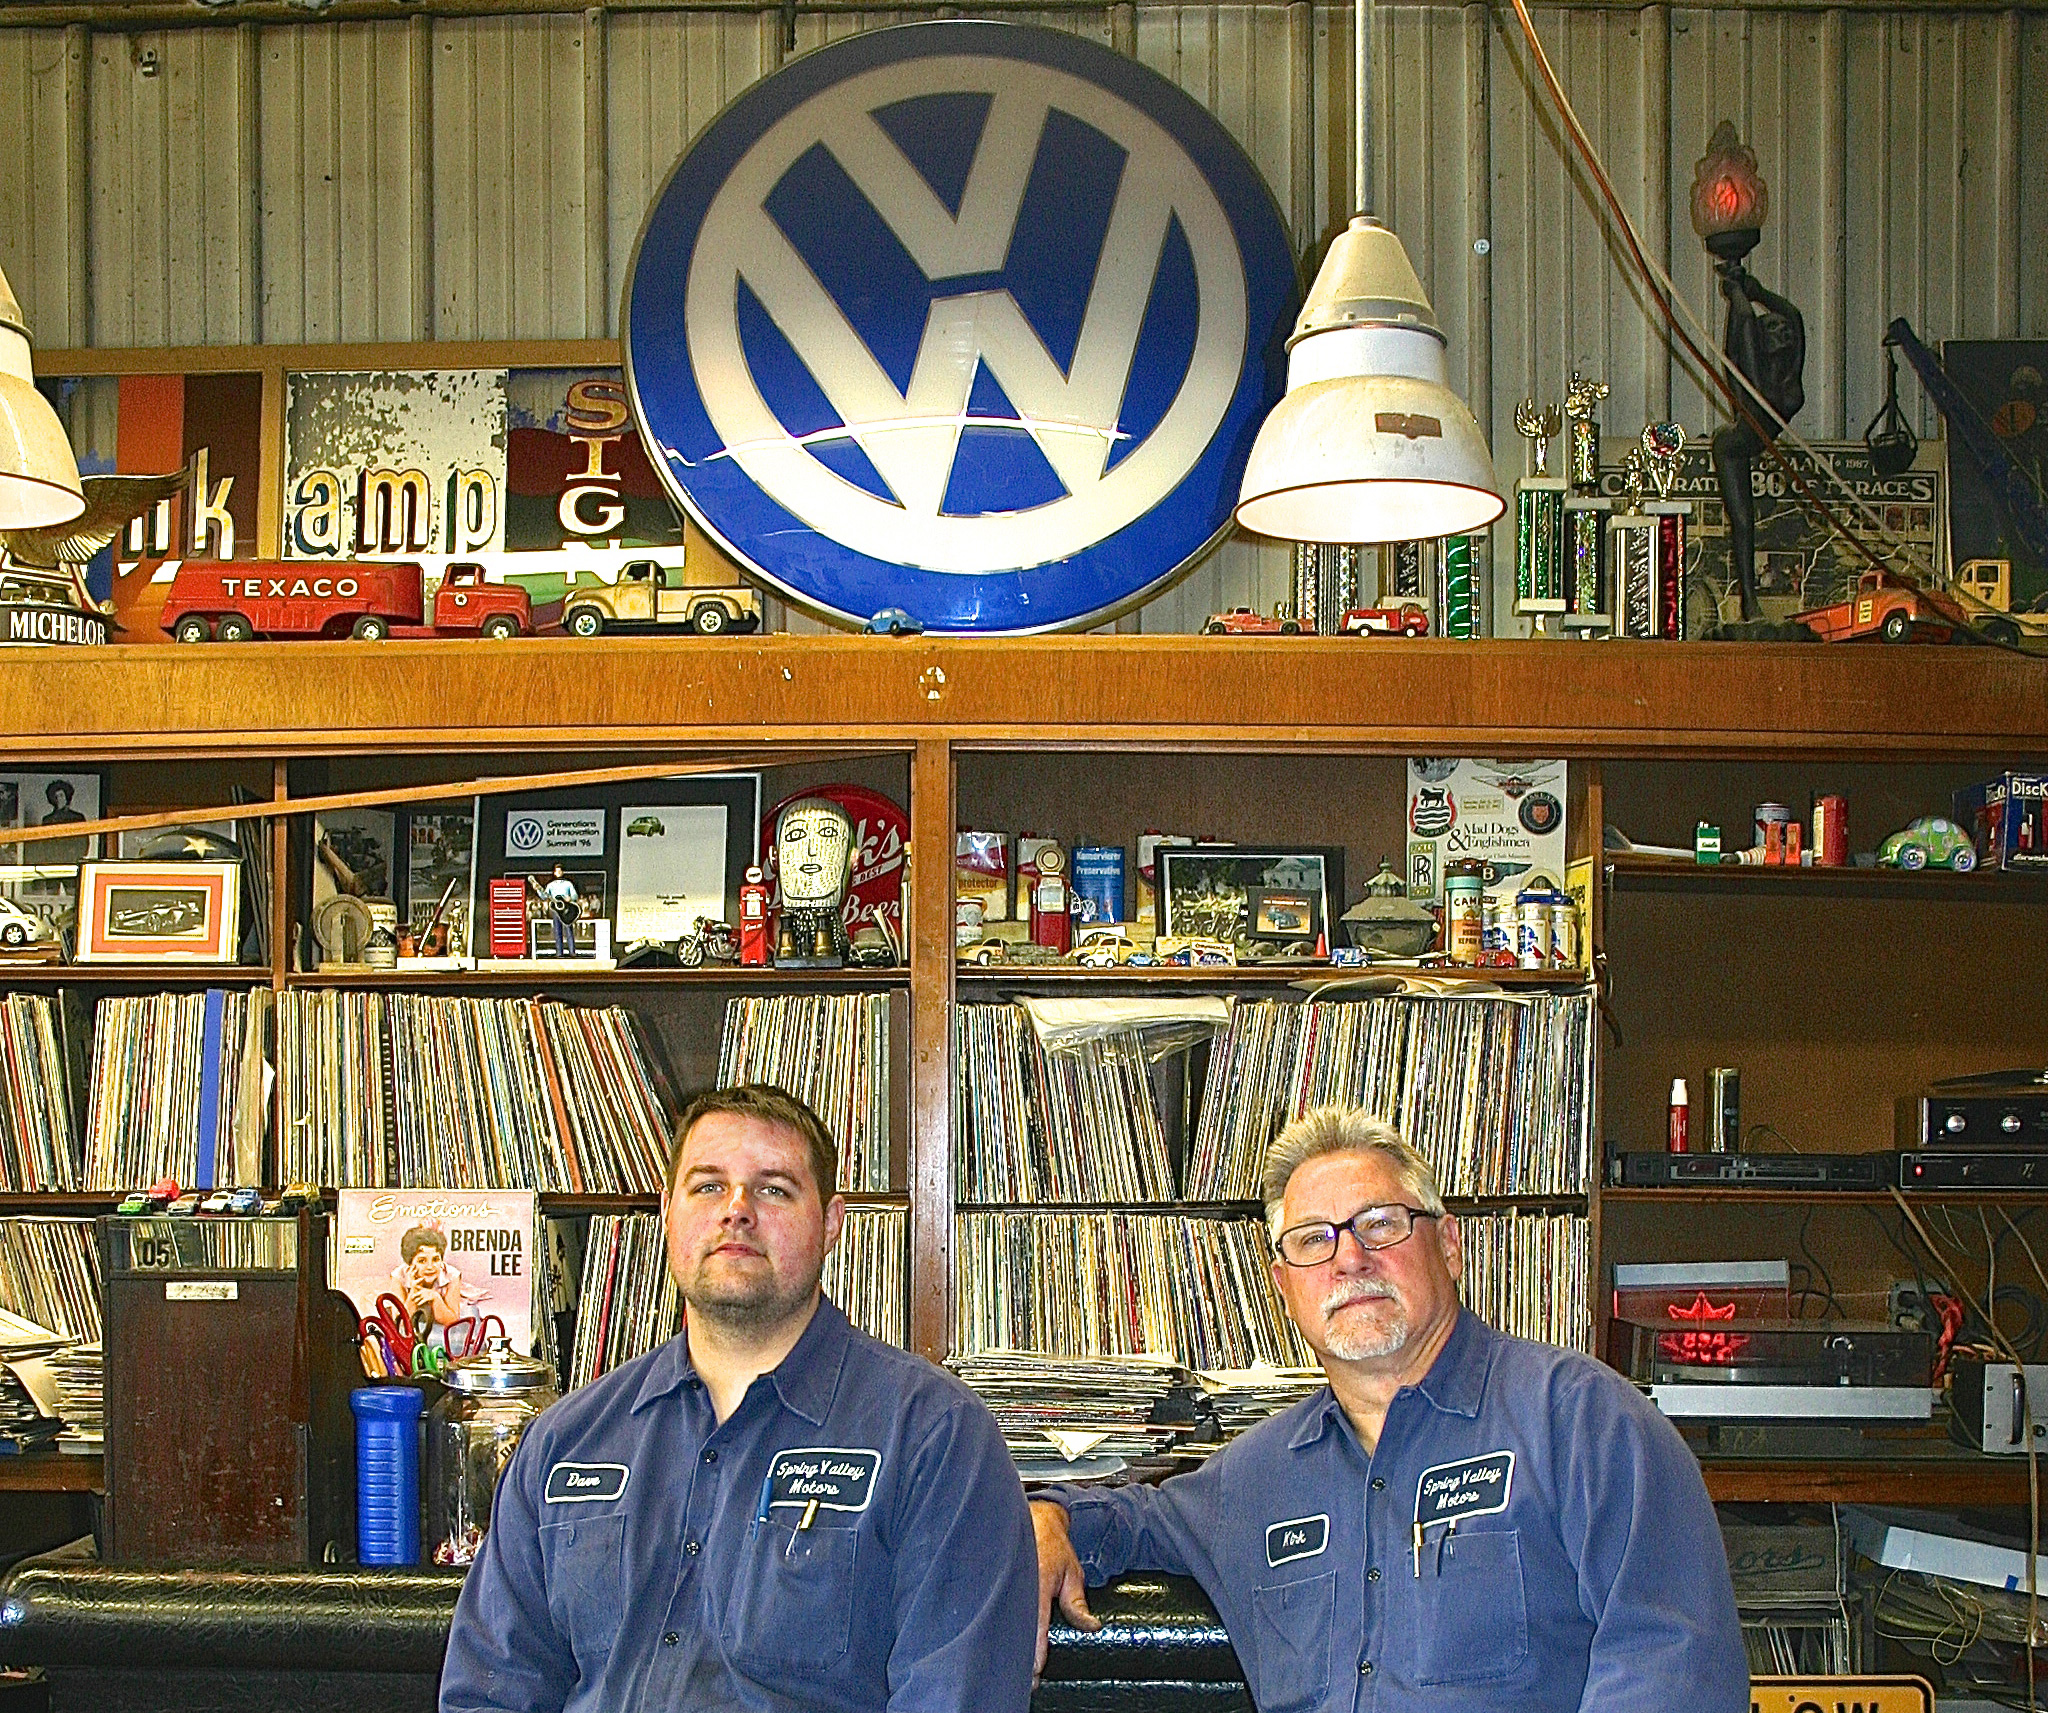 Serving Kalamazoo since 1981, Kirk and Dave Leftwich are committed to providing our customers with fast, quality work and parts at reasonable prices.